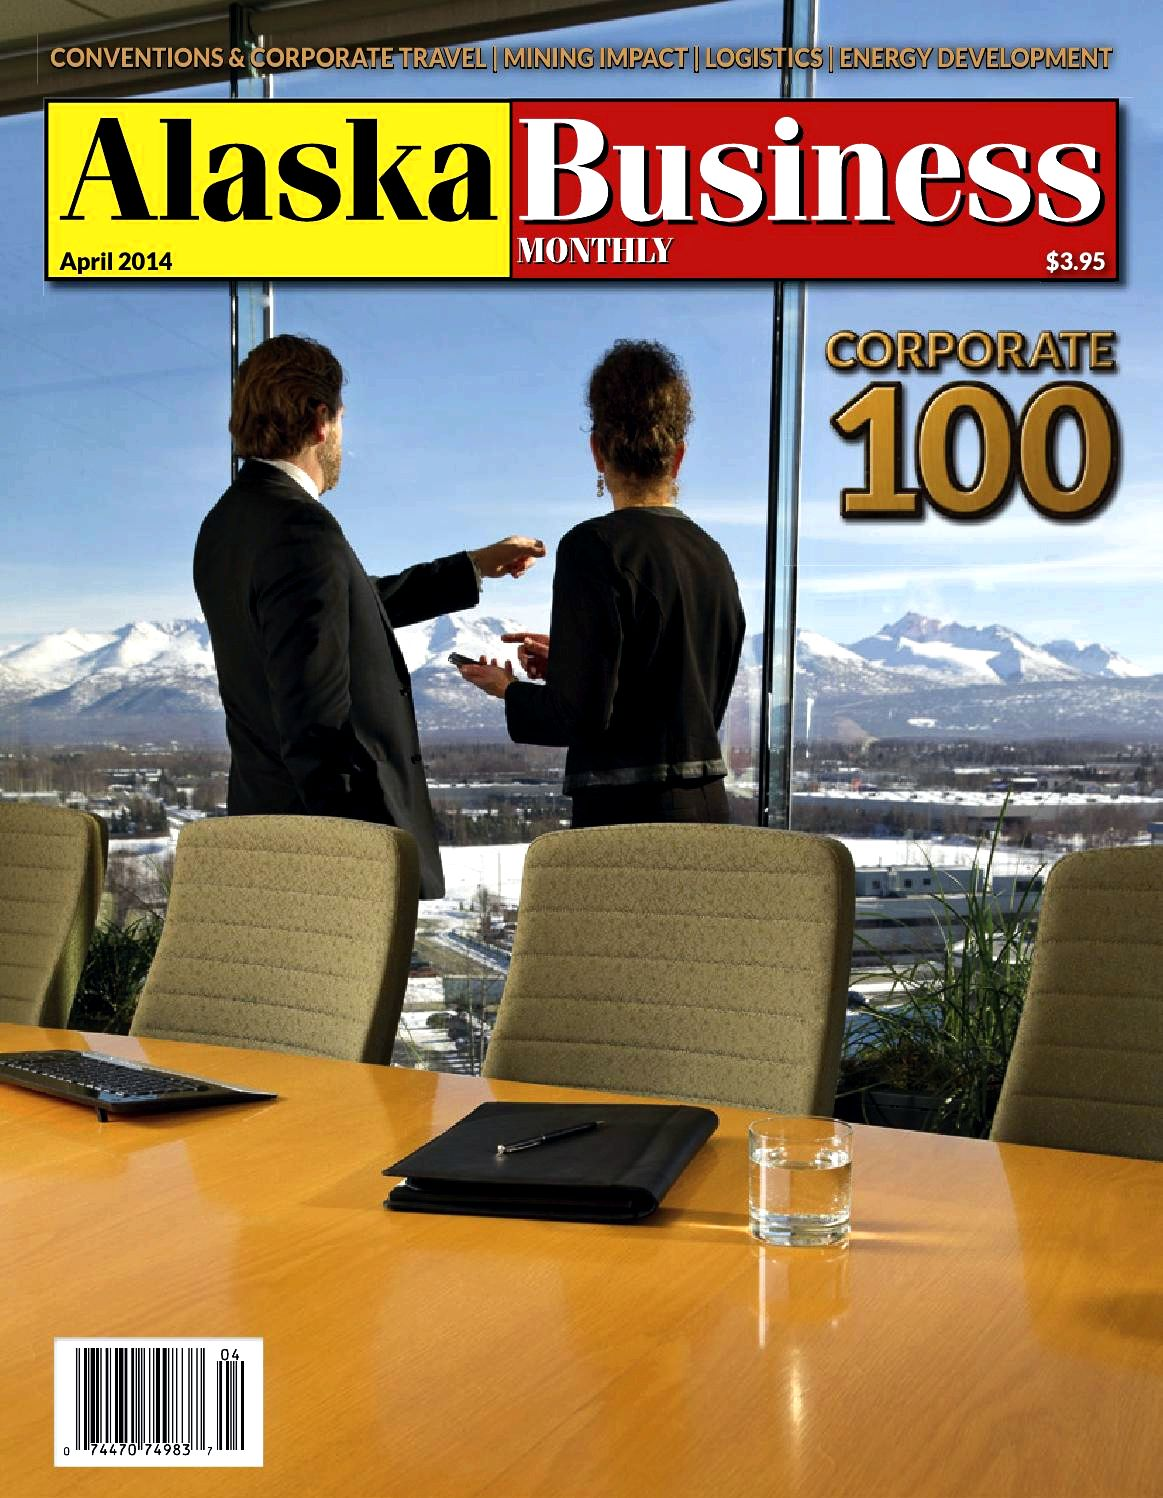 Norwegian country analysis brief - august 2012 - alaska business monthly - august 2012 - anchorage, ak and 16 breakthroughs were created